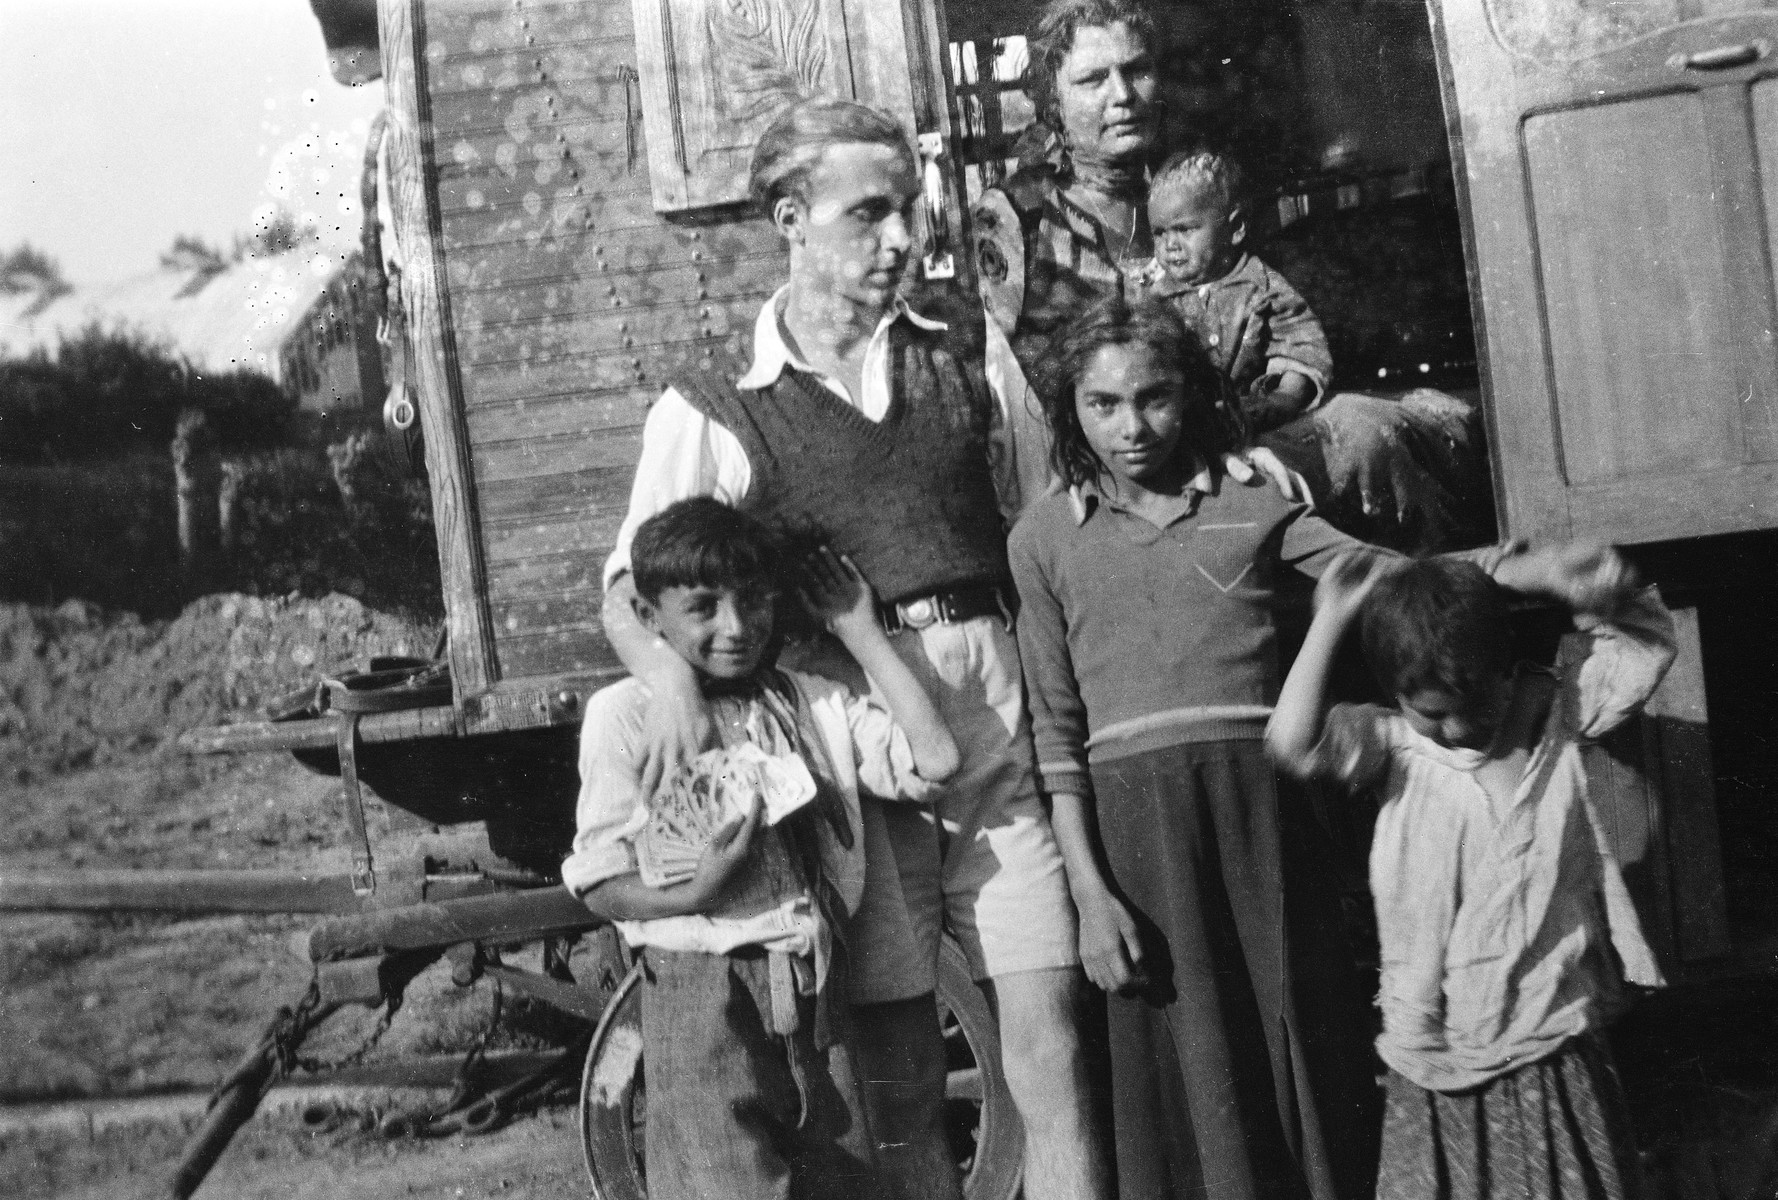 """A Roma (Gypsy) family poses around the doorway of their caravan with Jan Yoors (left, back).  The caption in """"The Heroic Present"""" reads, """"Belgium, 1930s.  Yoors is standing second from the left with his arms around Zurka, the son of Yoors' adoptive uncle, Tshukurka, and Keya, his adoptive sister."""""""